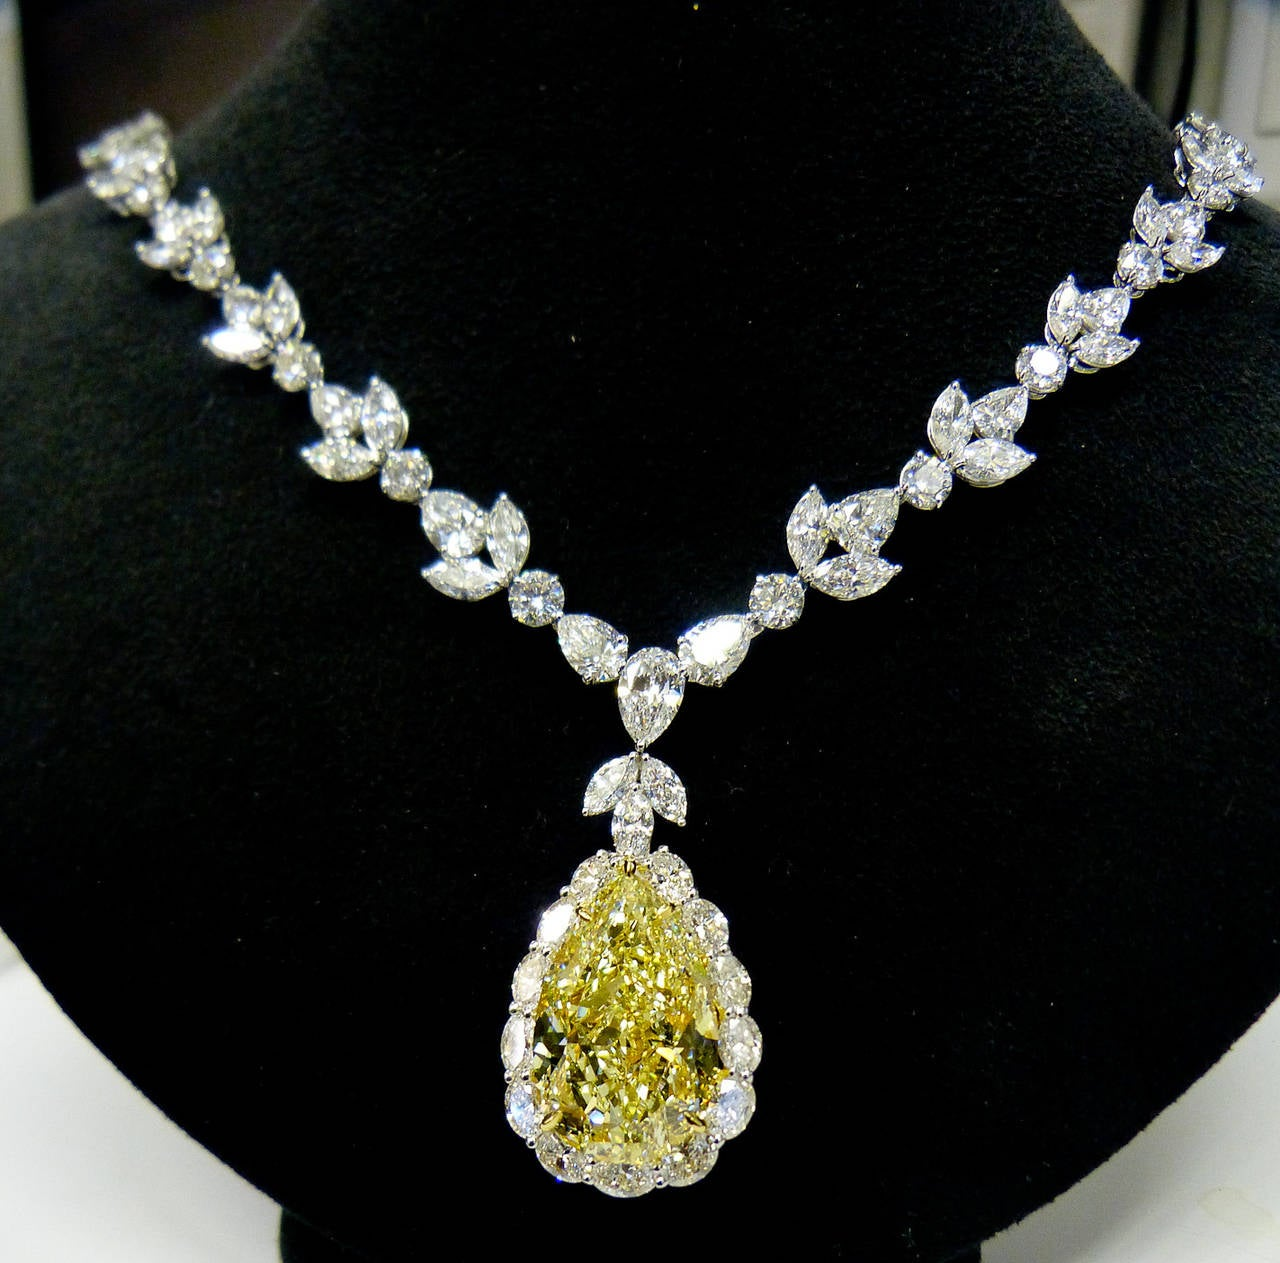 Magnificent 35.31 Carat Fancy Intense Yellow Pear Diamond Necklace 2